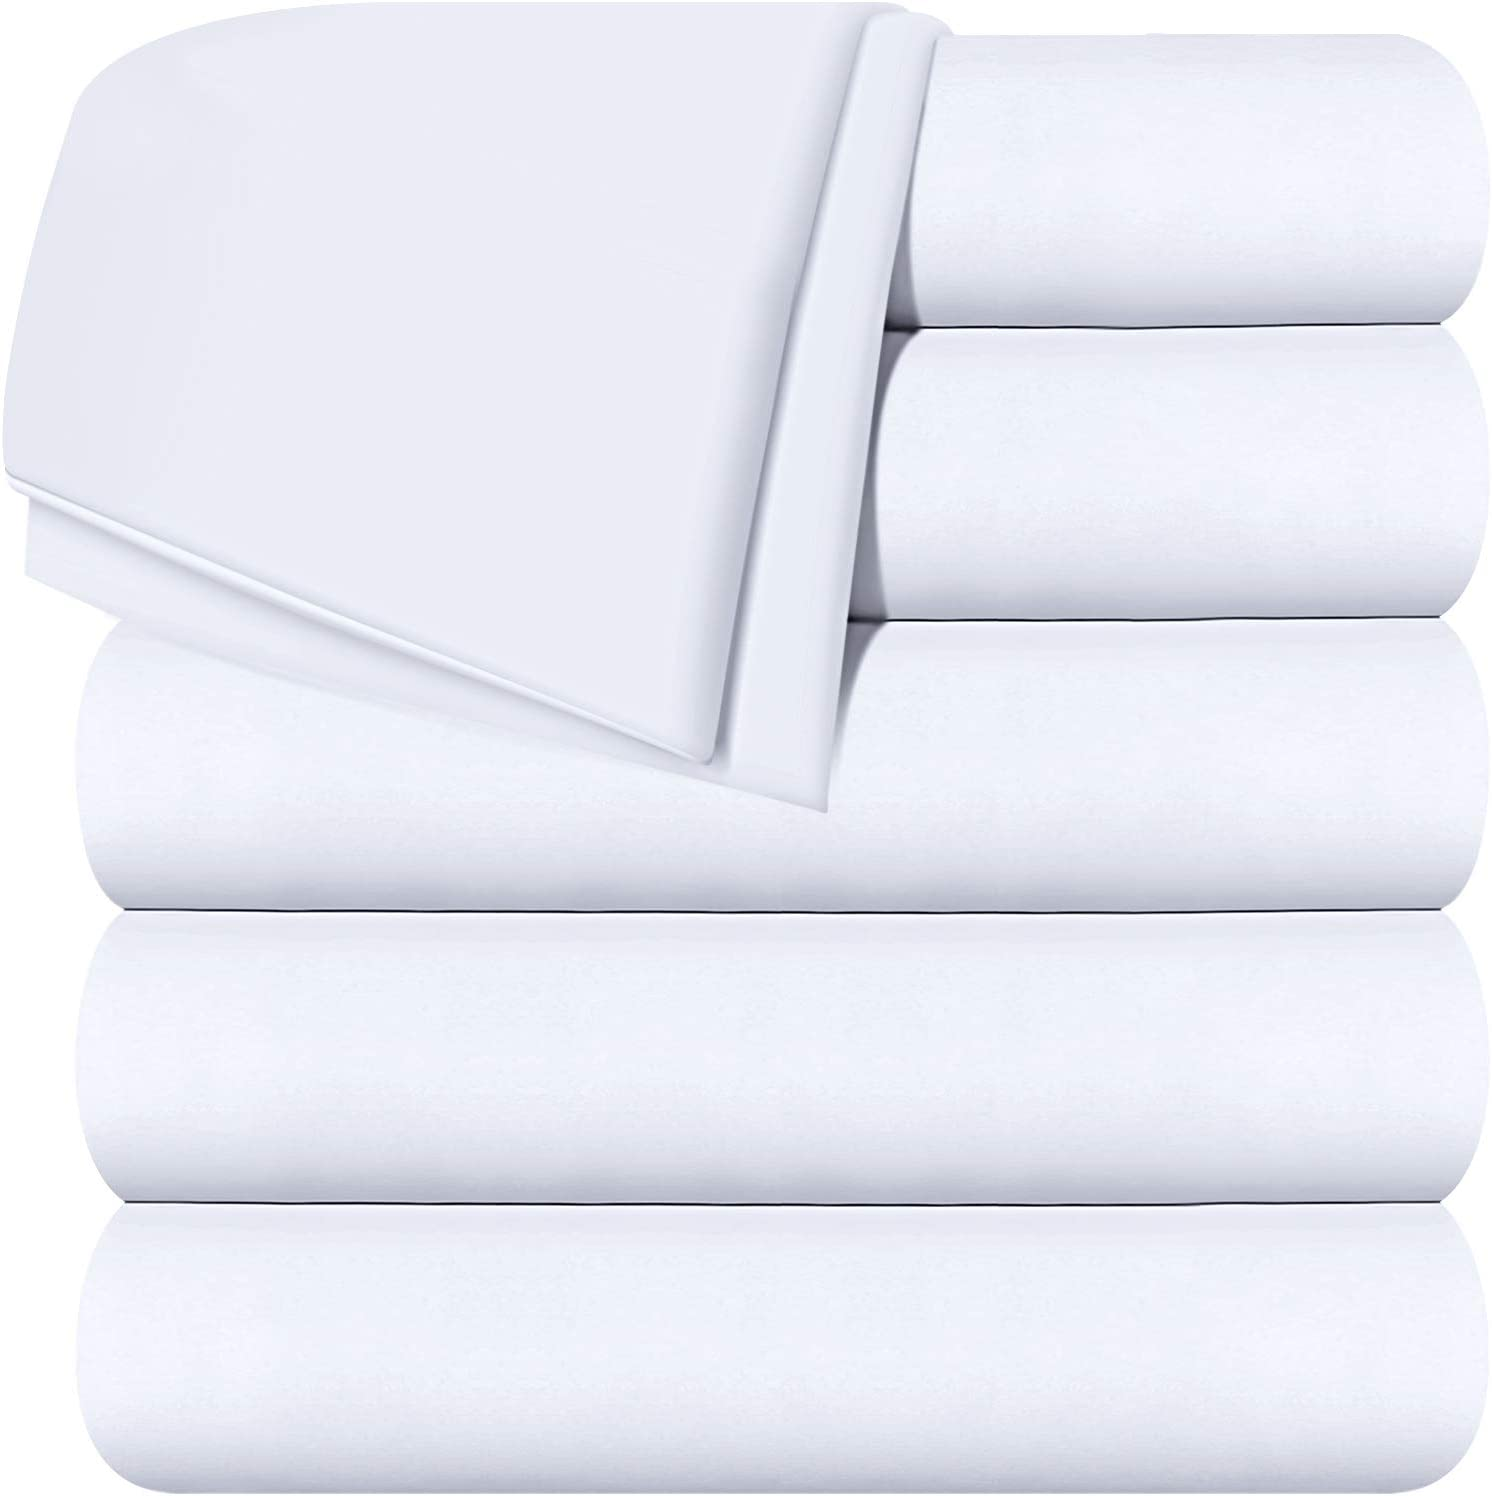 Utopia Bedding Flat Sheets - Pack of 6 - Soft Brushed Microfiber Fabric - Shrinkage & Fade Resistant Top Sheets - Easy Care (Twin, White): Home & Kitchen